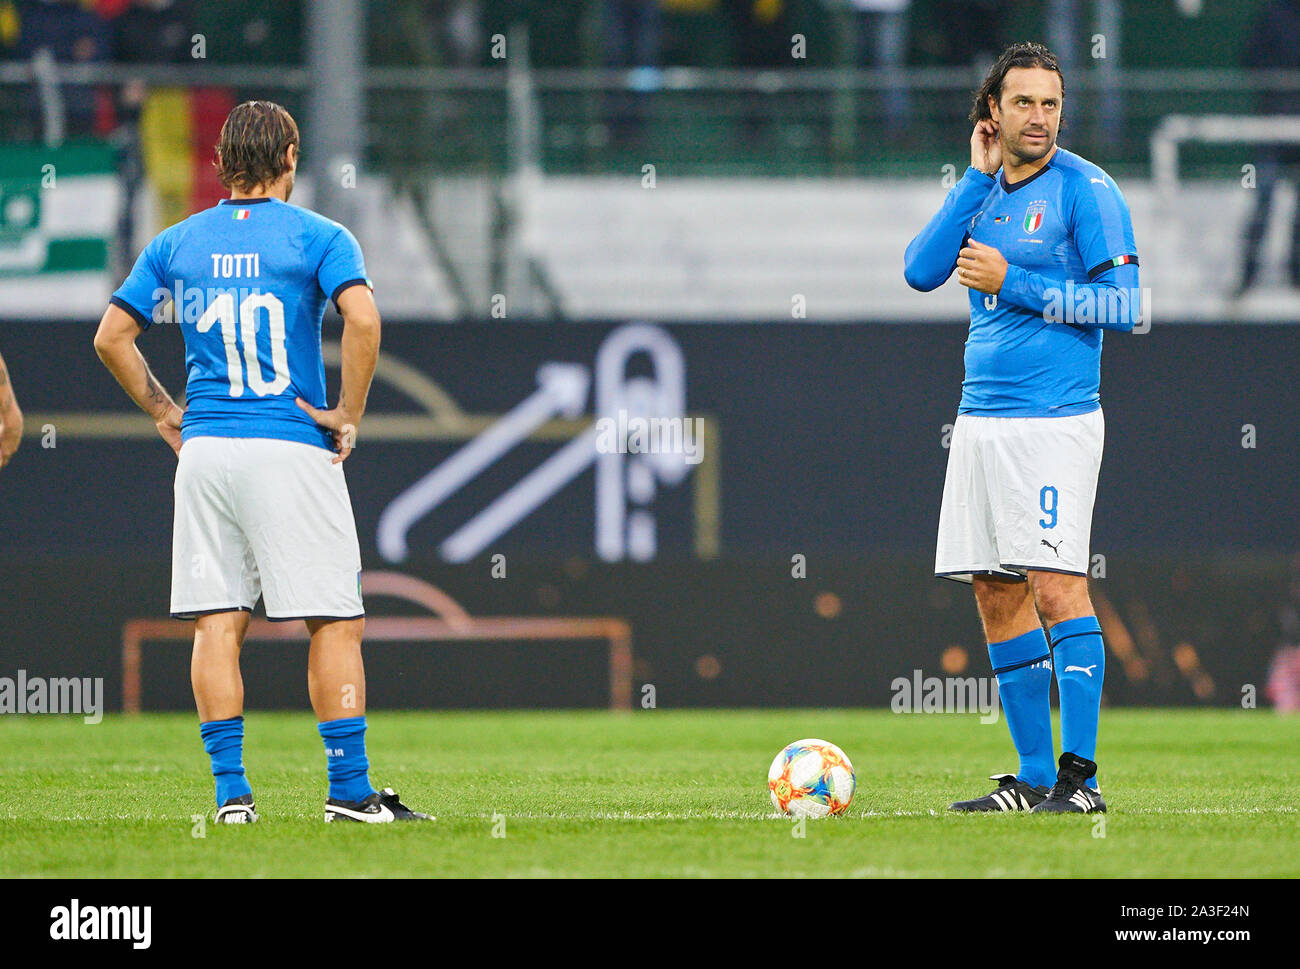 Fürth, Germany, October 07, 2019 Francesco TOTTI, ITA All Stars Nr. 10 Luca TONI, ITA All Stars Nr. 9 kick-off, begin, Anstoss,  GERMANY ALL-STARS - ITALY AZZURRI   ALL STARS 3-3, German Soccer League , Fürth, Germany,  October 07, 2019  Season 2019/2020 © Peter Schatz / Alamy Live News Stock Photo